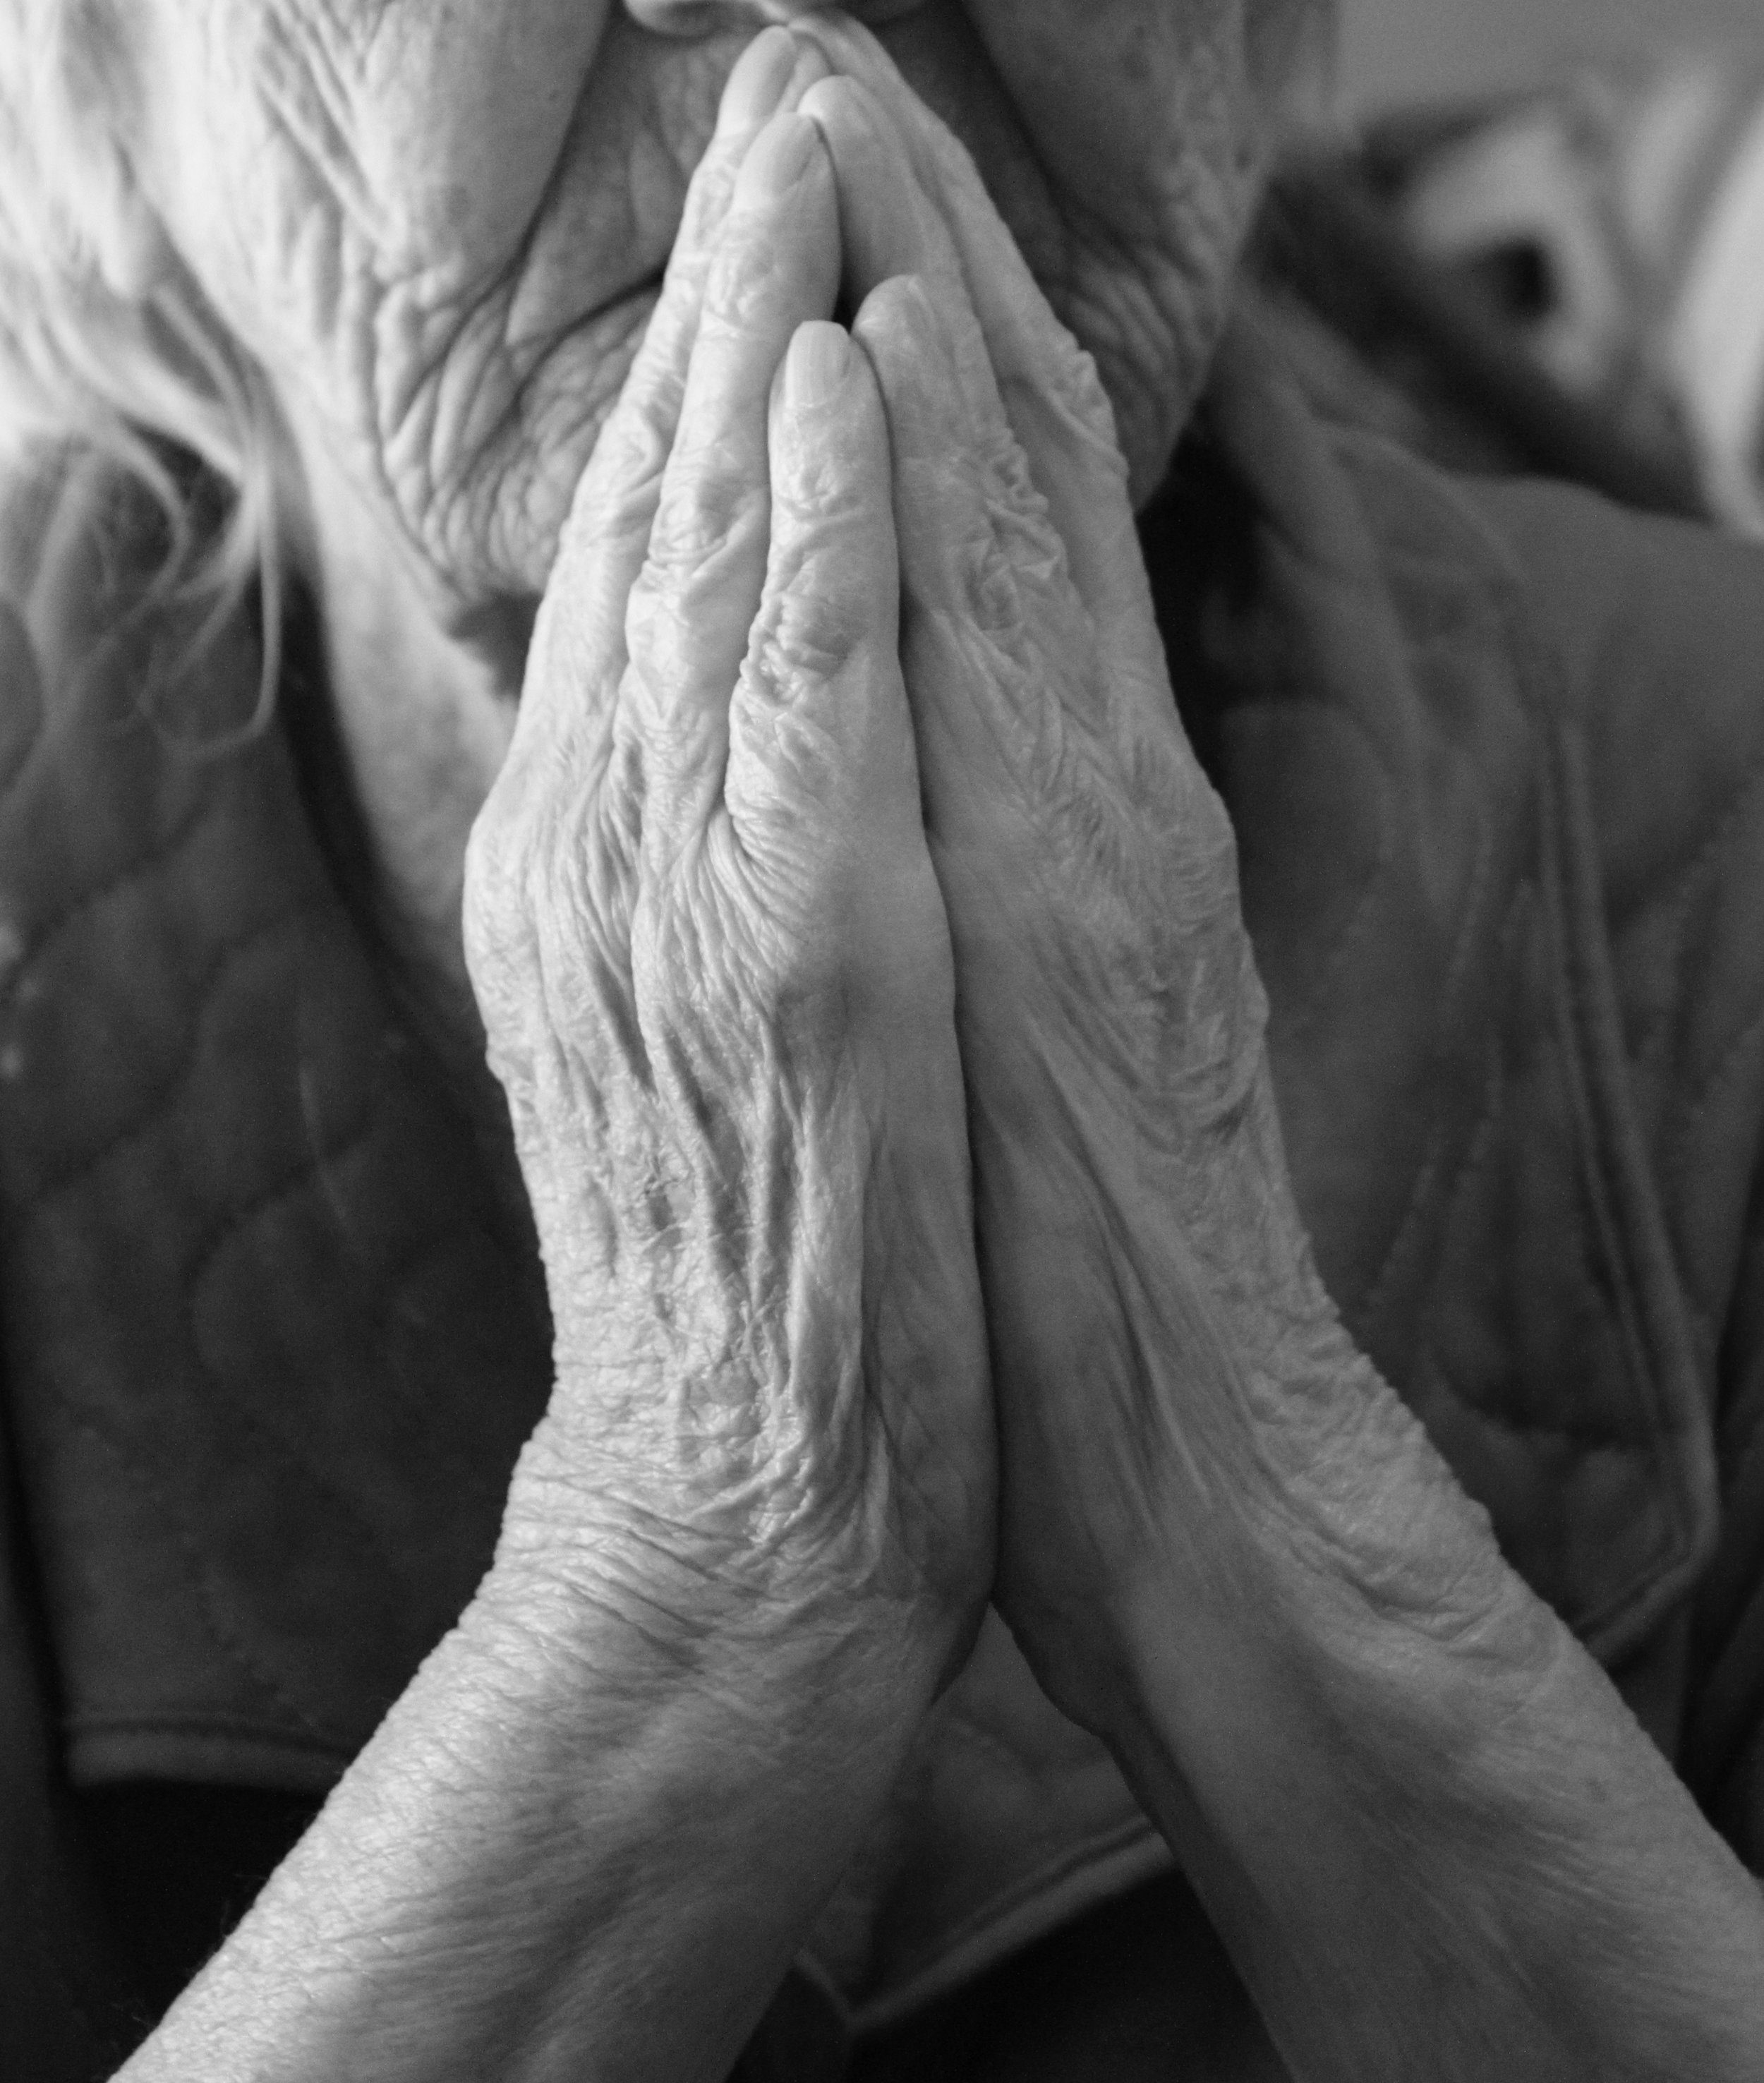 old woman praying.jpg